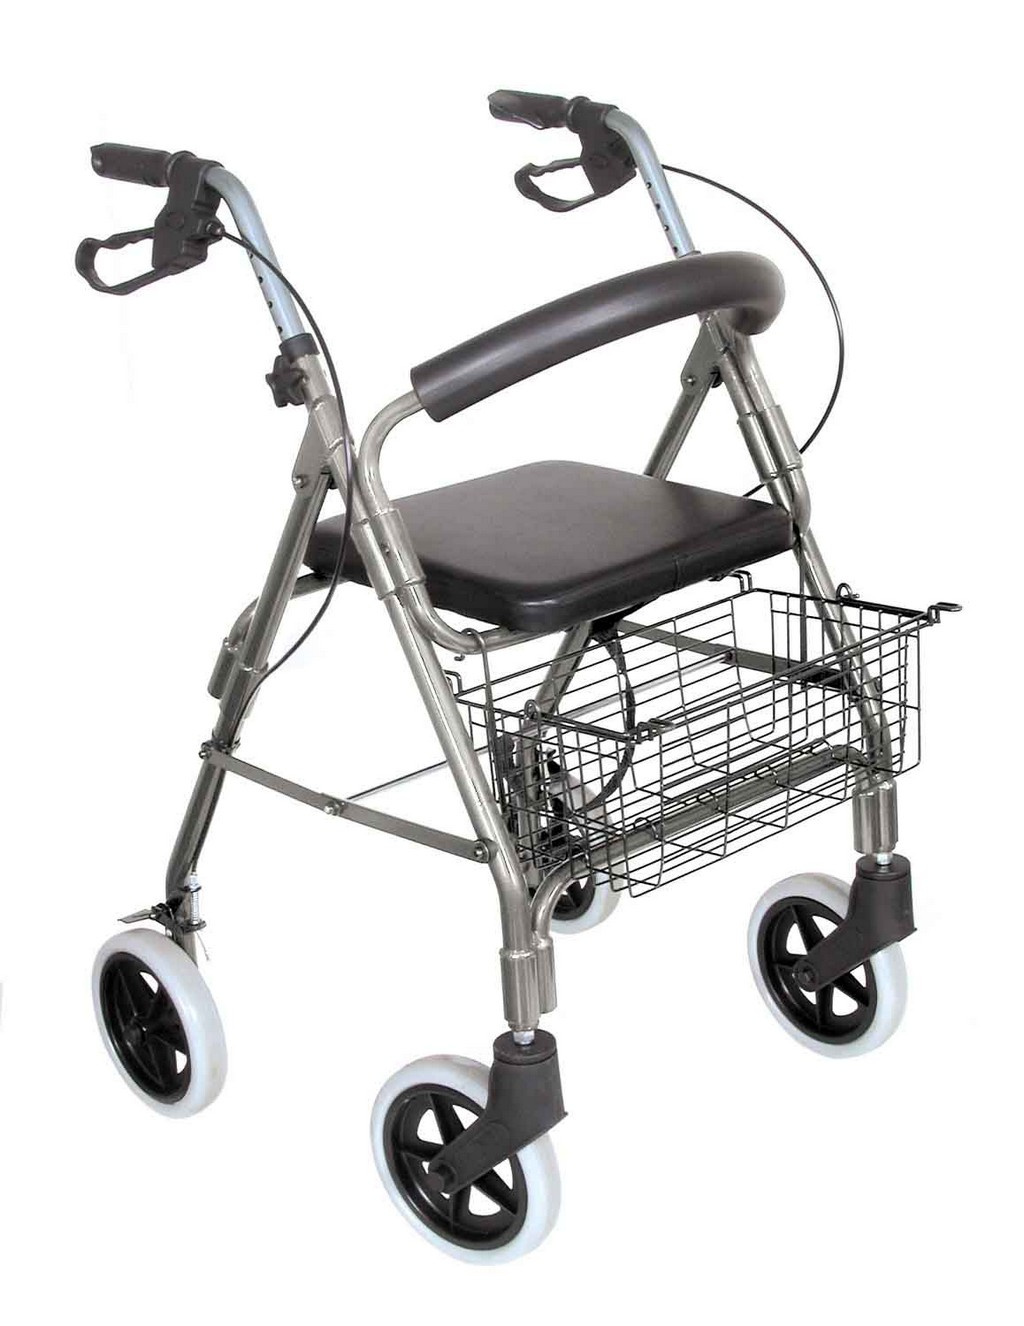 rollator norge, rollators and walkers, medline aluminum rollators, carex roller rollator walker stores